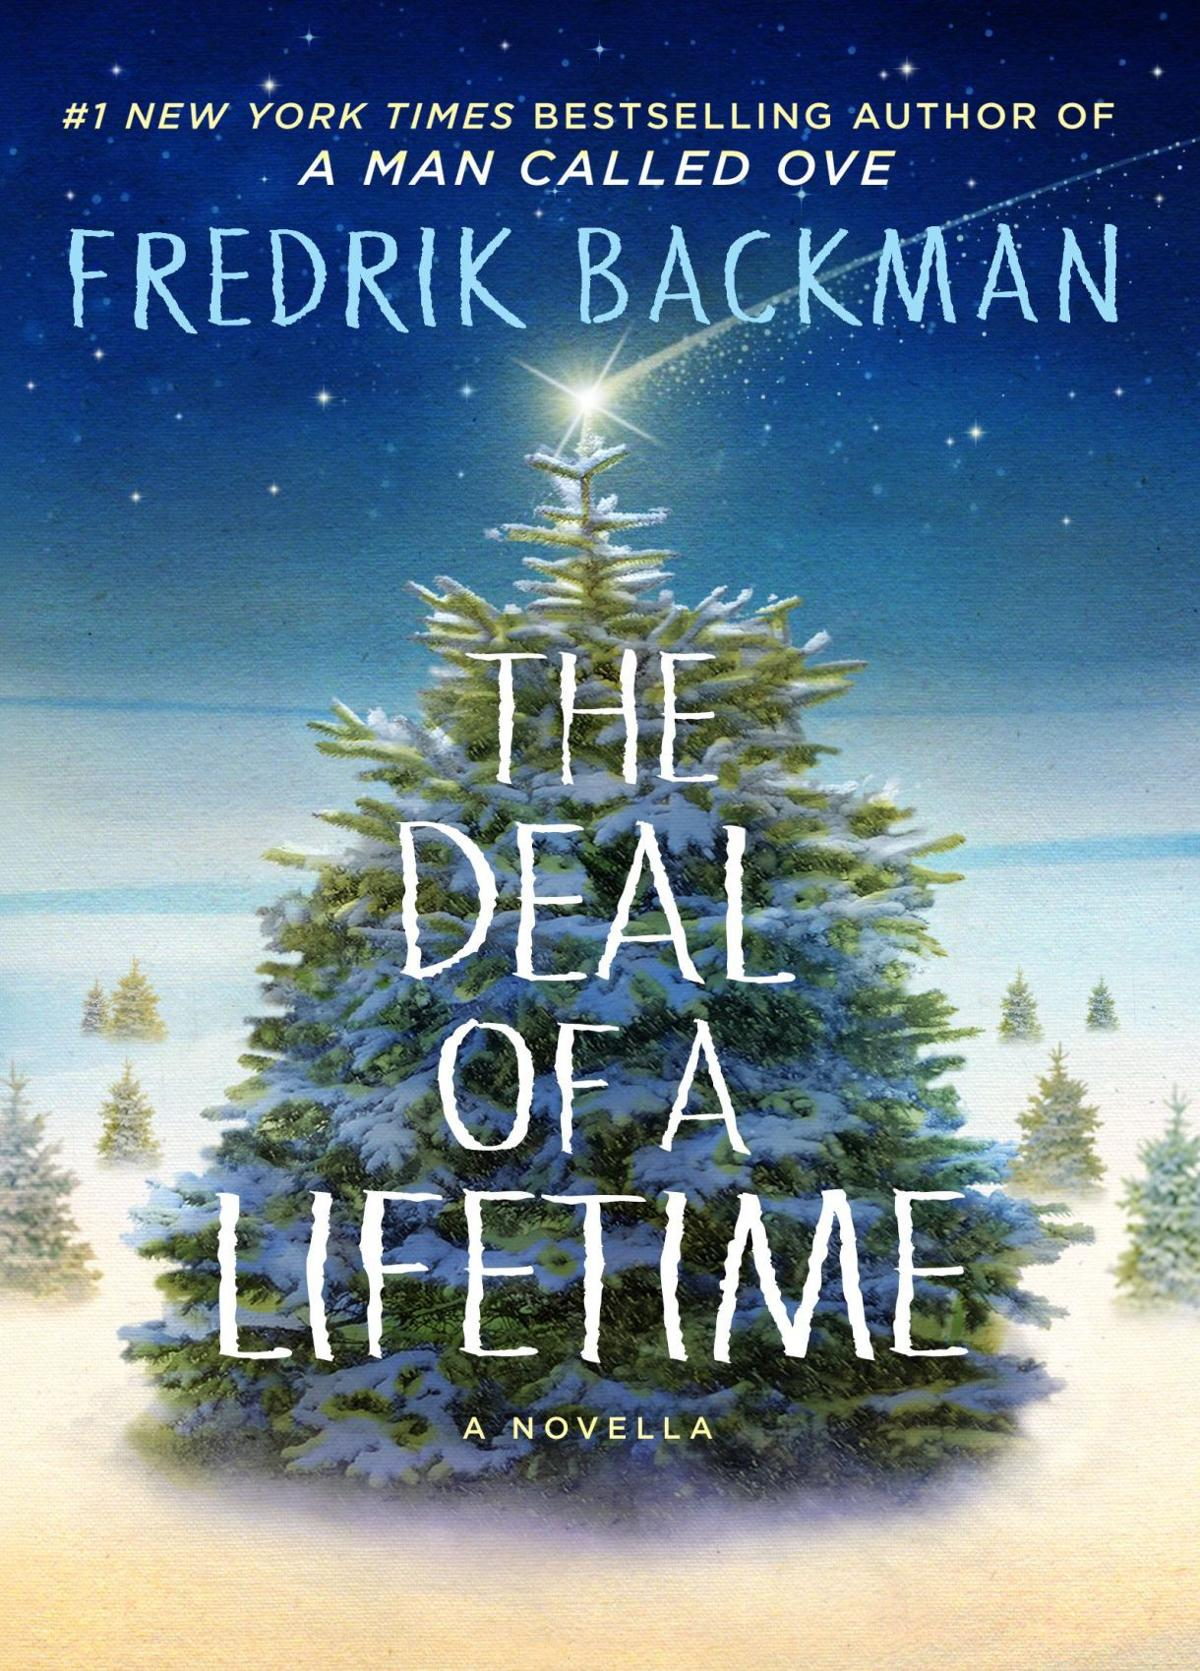 'The Deal of a Lifetime'